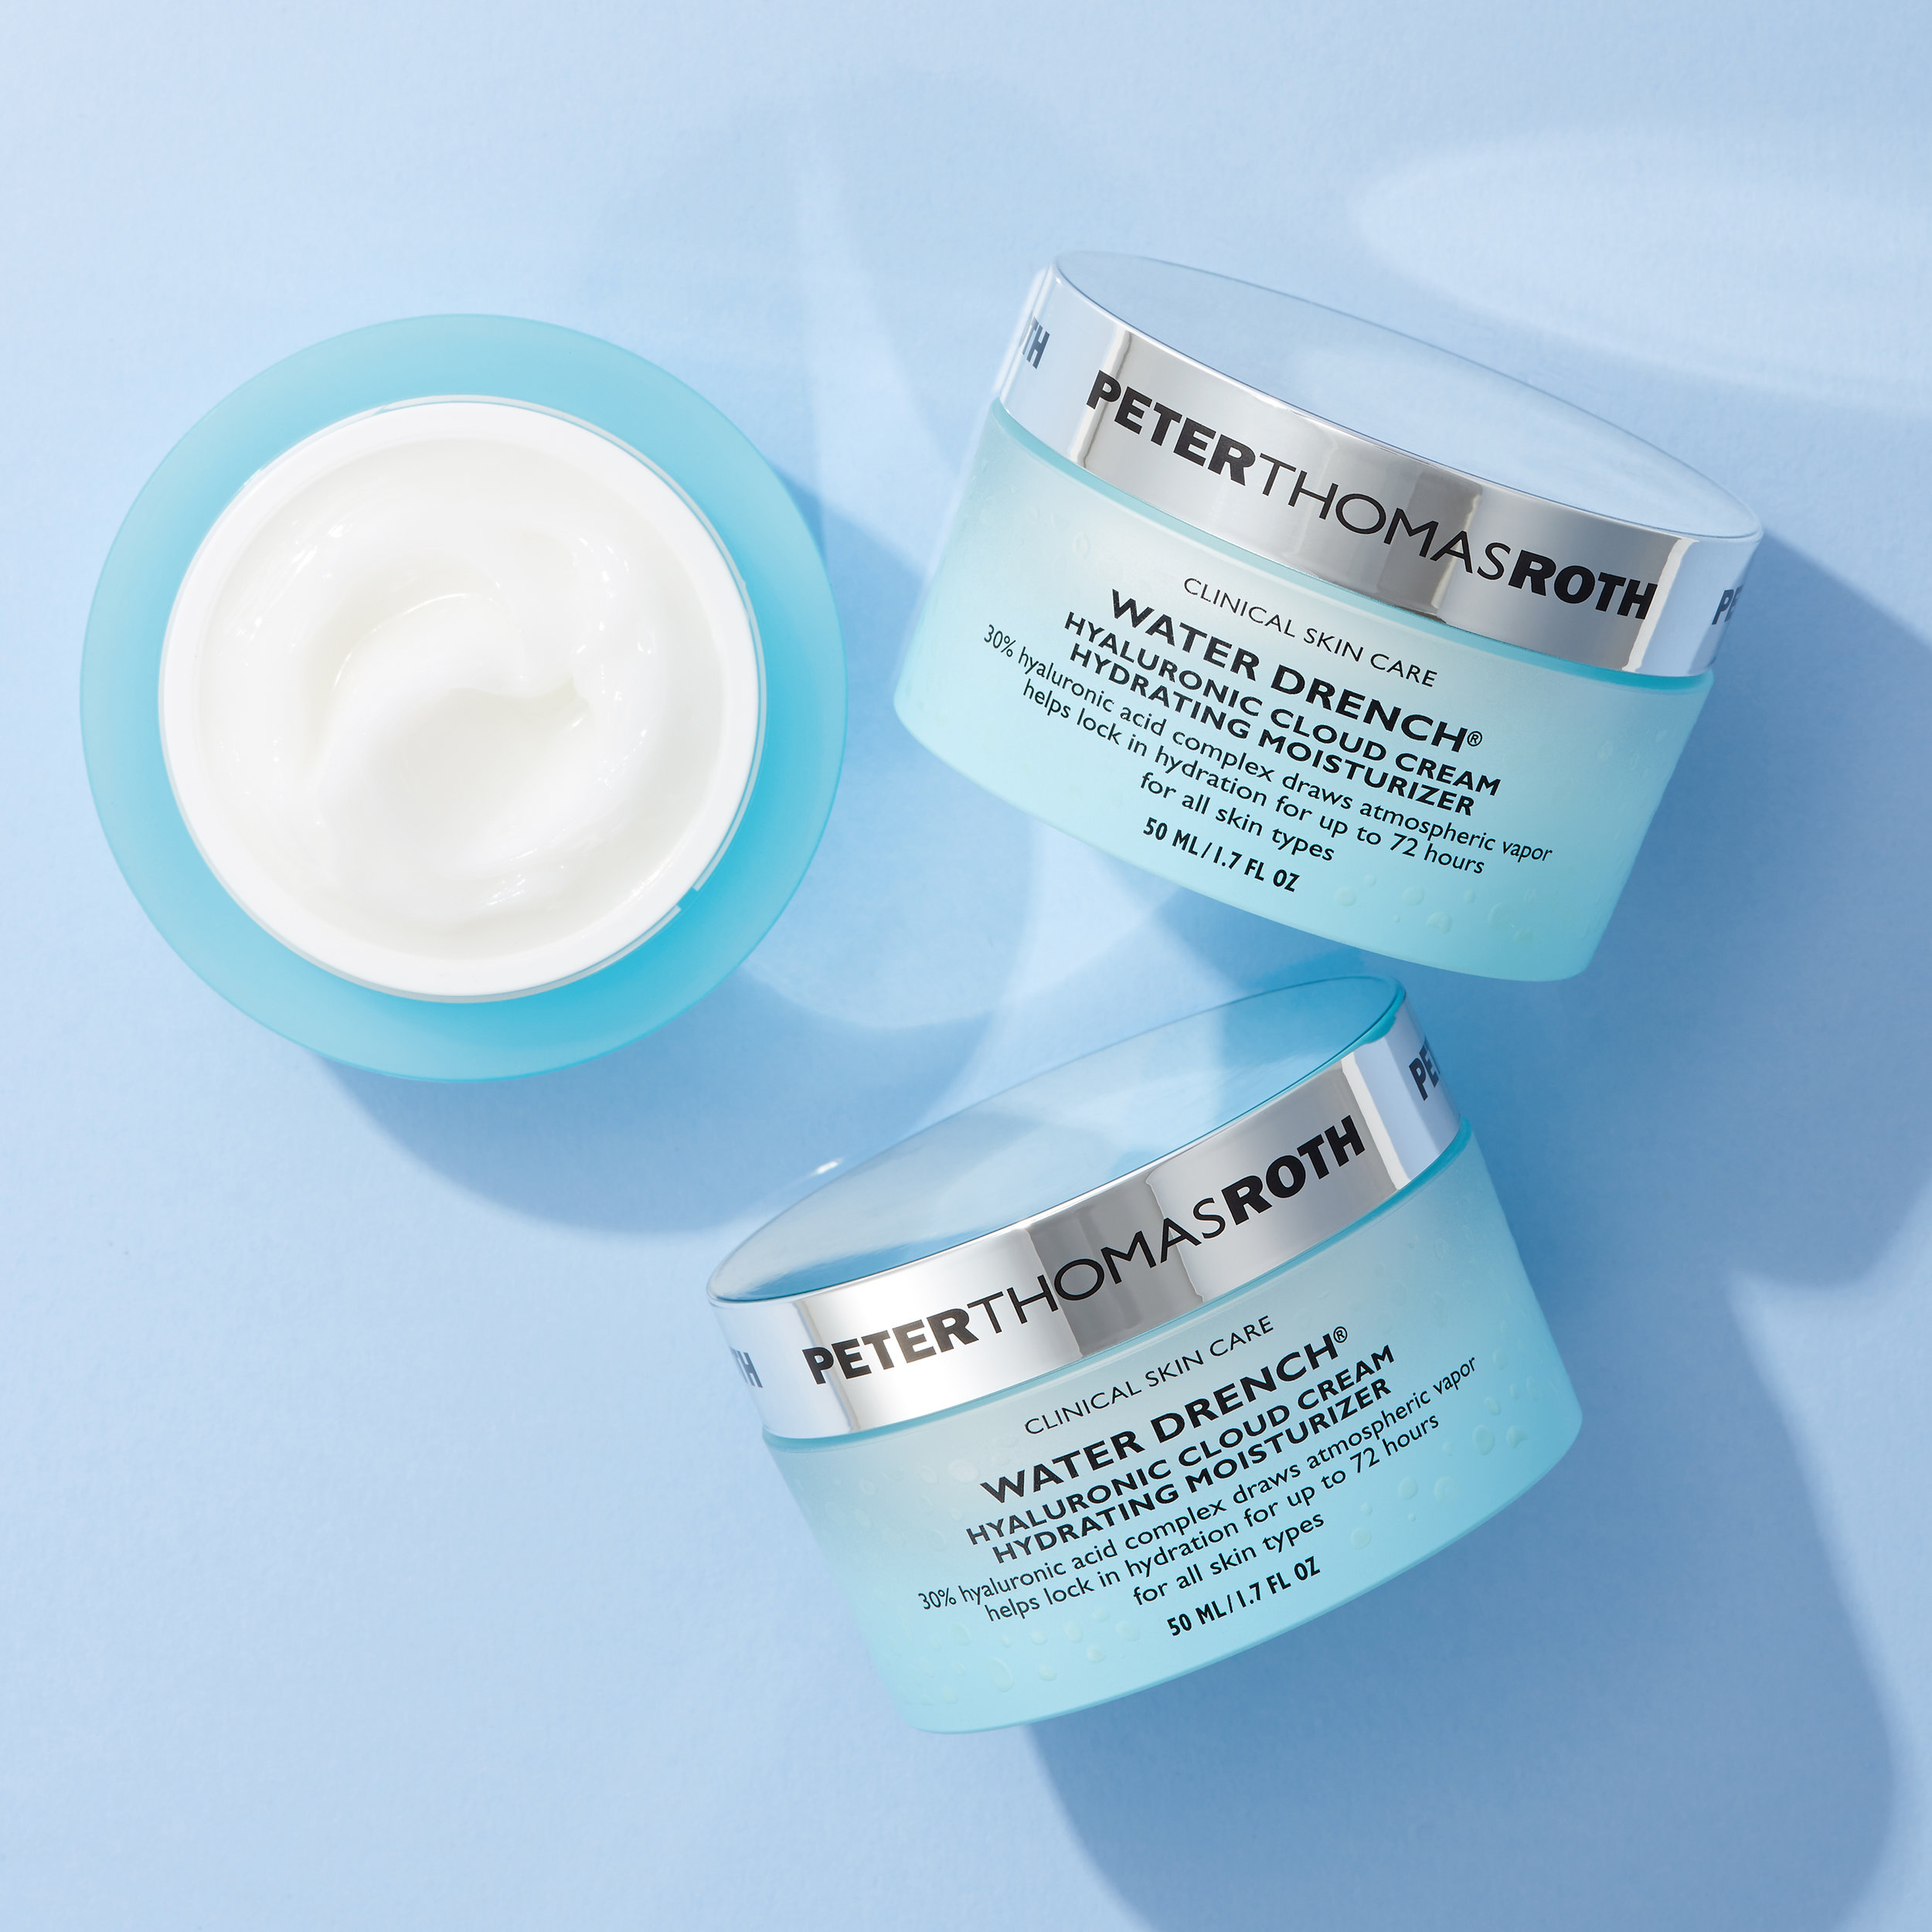 Peter Thomas Roth Water Drench Hyaluronic Cloud Cream - This is the holy grail of moisturizers. It's a concentrated 30 percent hyaluronic acid cream that transforms atmospheric vapor into fresh, pure water, WOW SCIENCE. And it feels super light and goes perfectly under makeup. I slather this stuff all over my face on long haul flights.TRAVEL SIZE: $22REG SIZE: $52